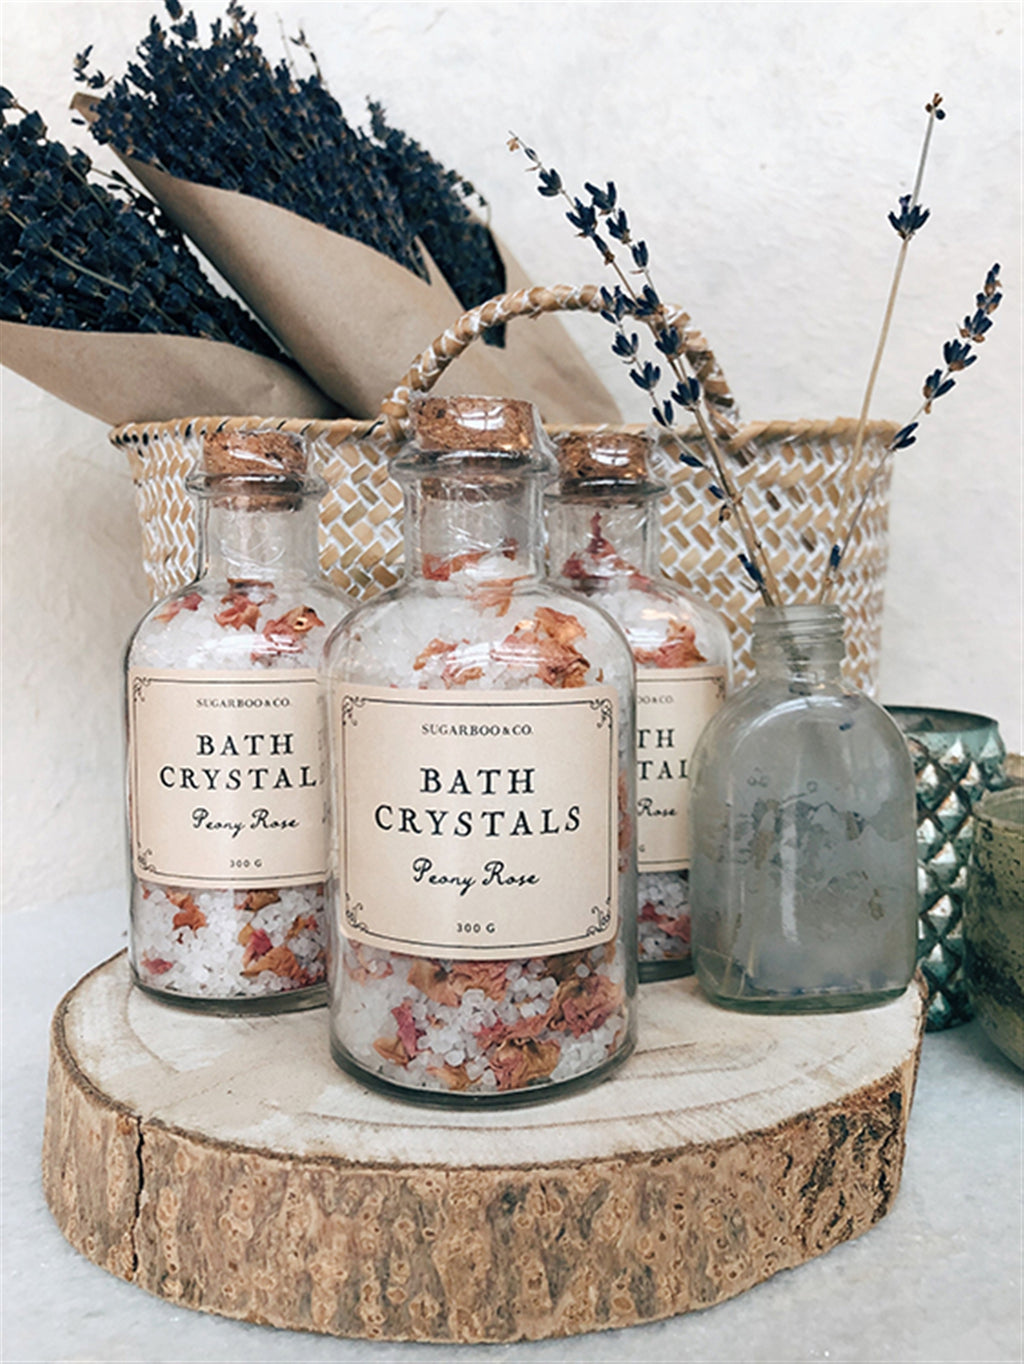 Peony Rose Bath Crystals - Cinderella Ranch Boutique